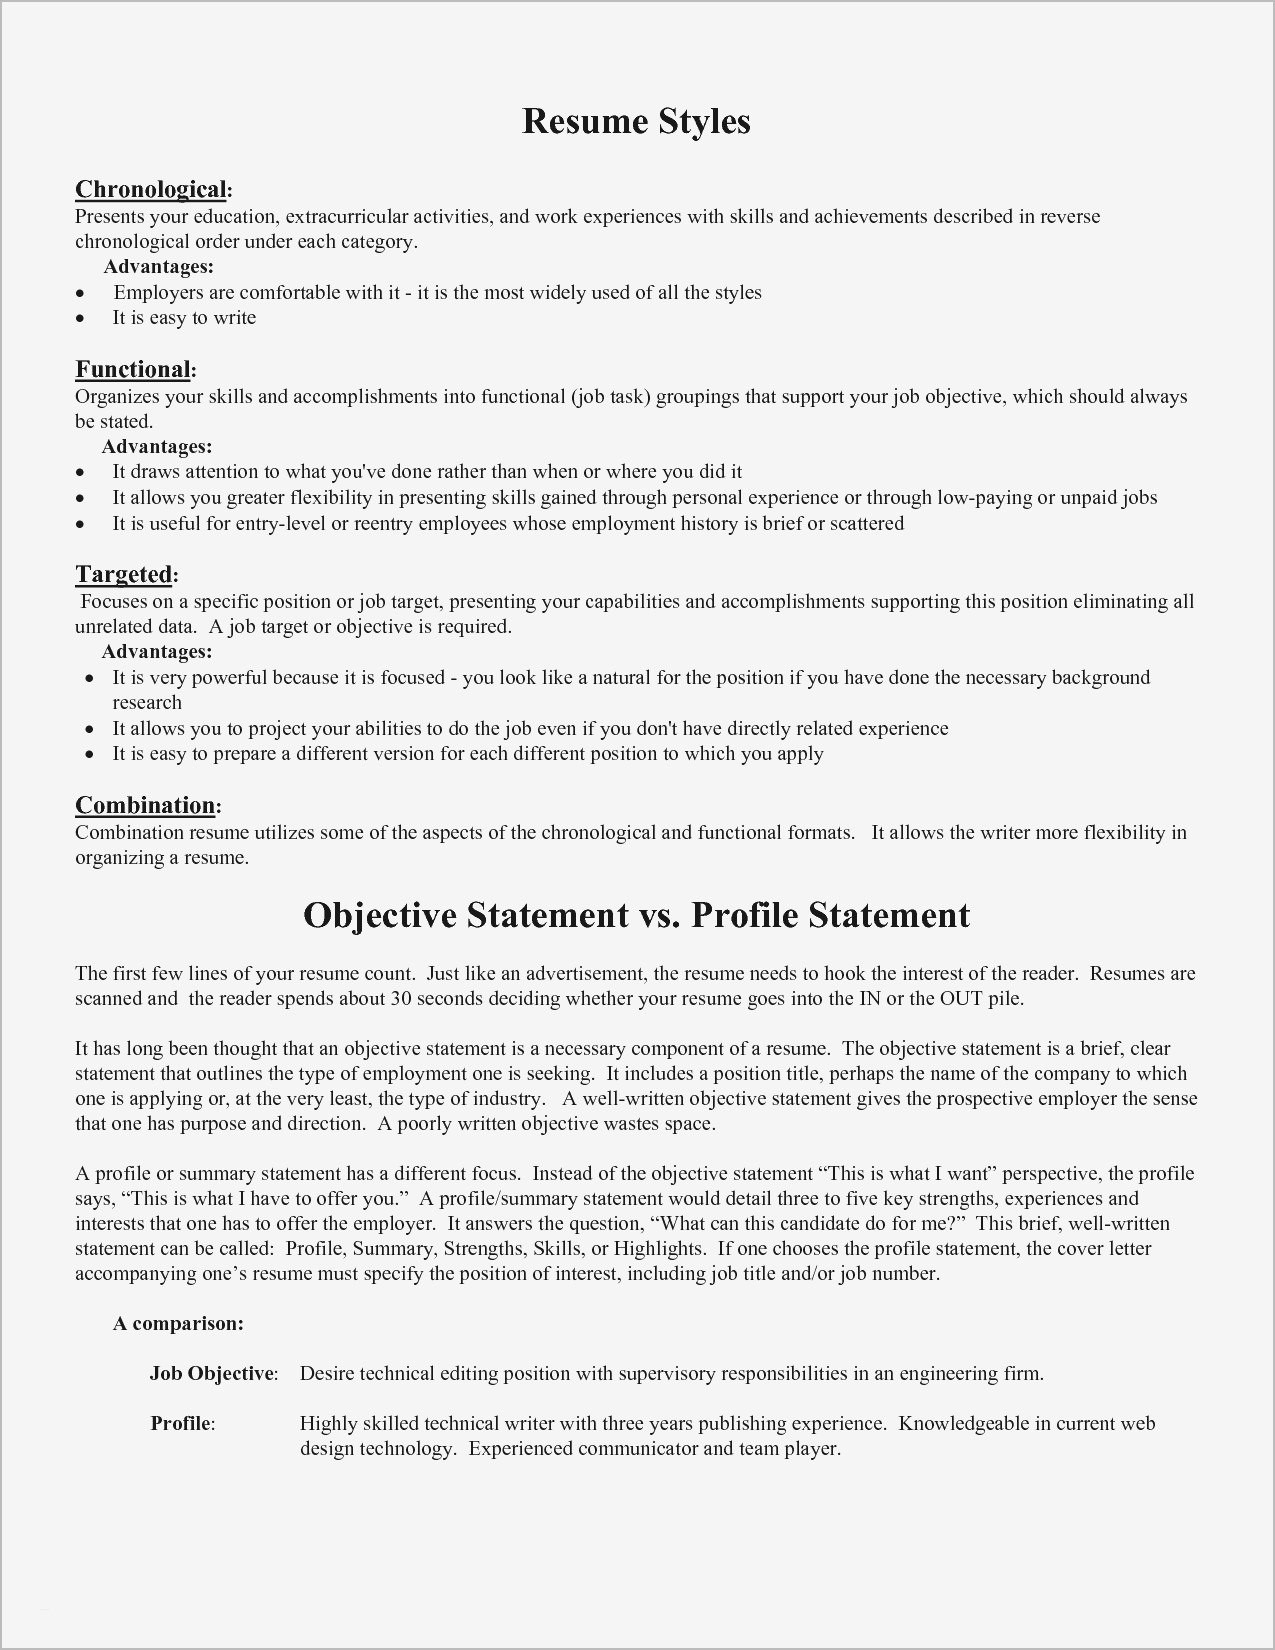 Resume Opening Statements Examples - Current Resume Styles Inspirational Unique Examples Resumes